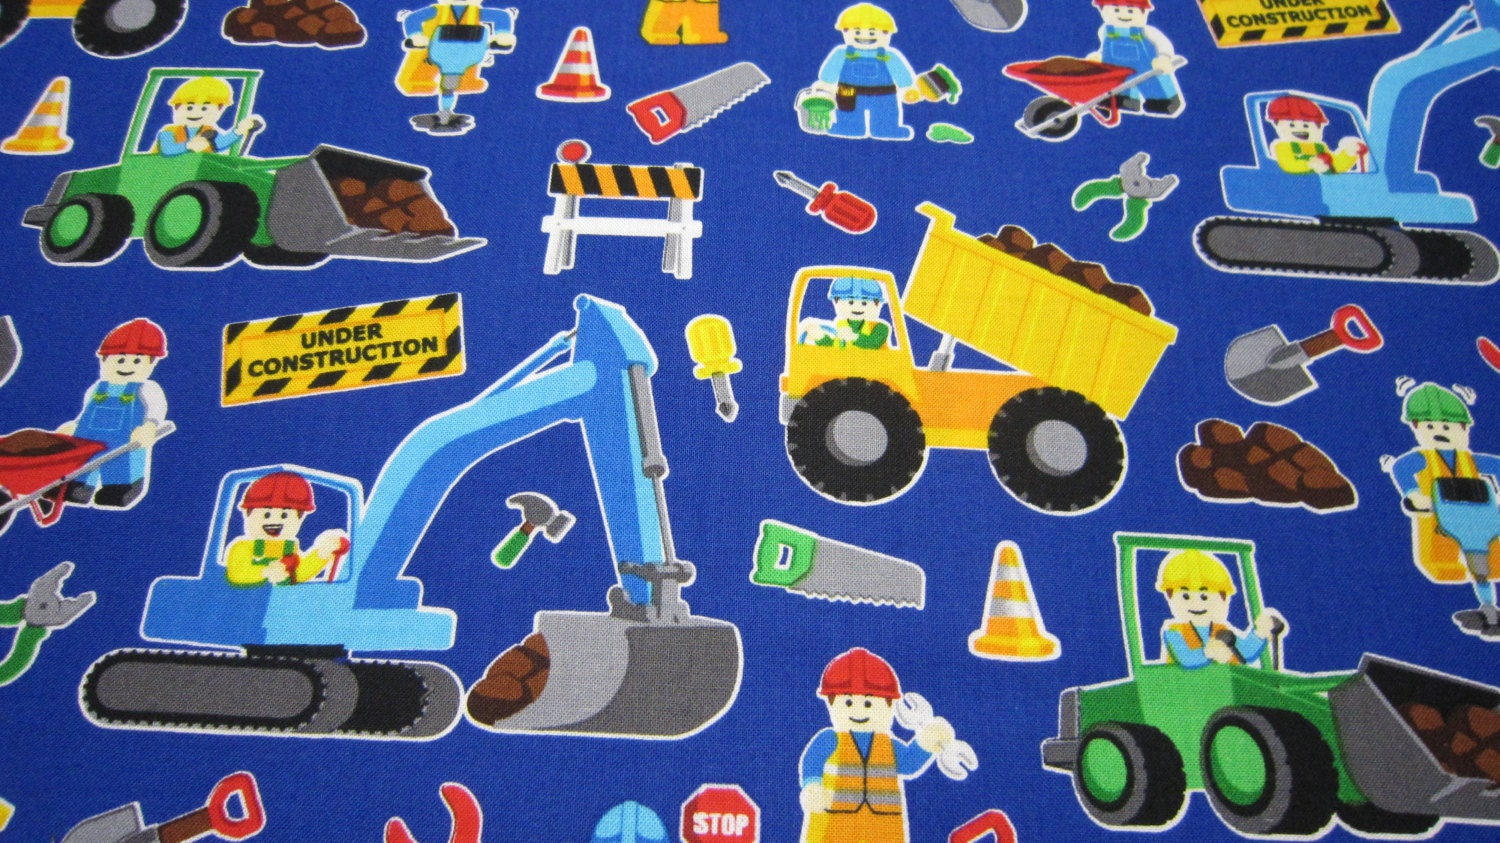 Childrens construction cotton fabric by timeless treasures for Childrens cotton fabric